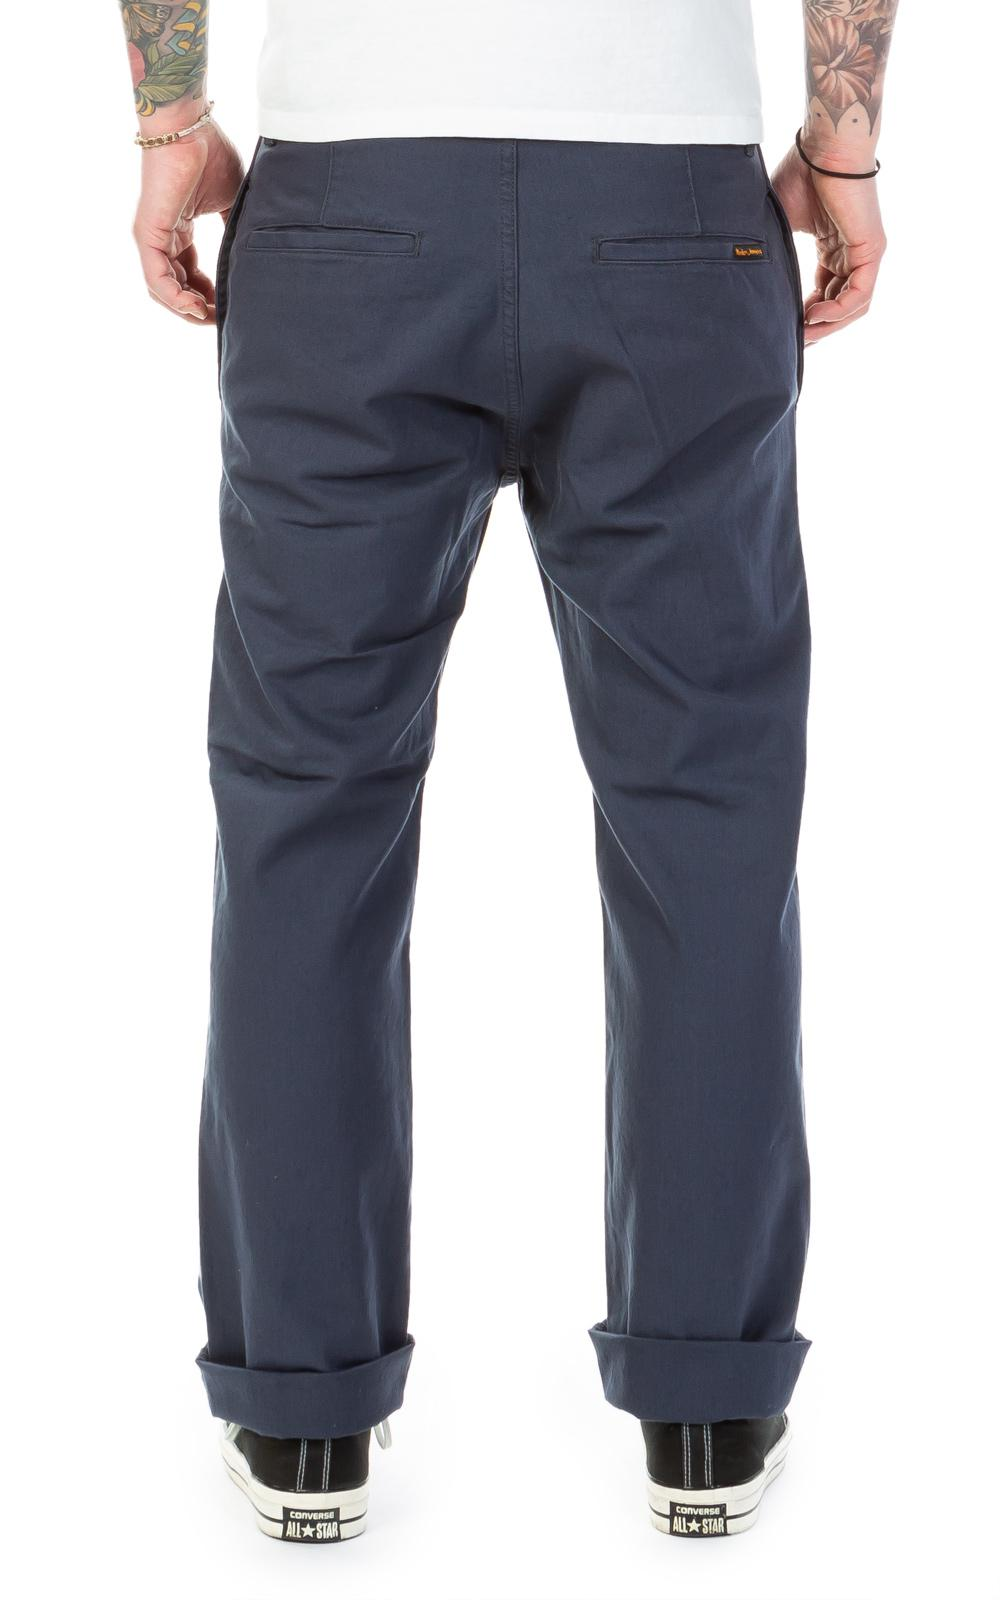 Men Jeans Smokey Loose Lyst For Alvar Nudie Blue In qwZxBzvx